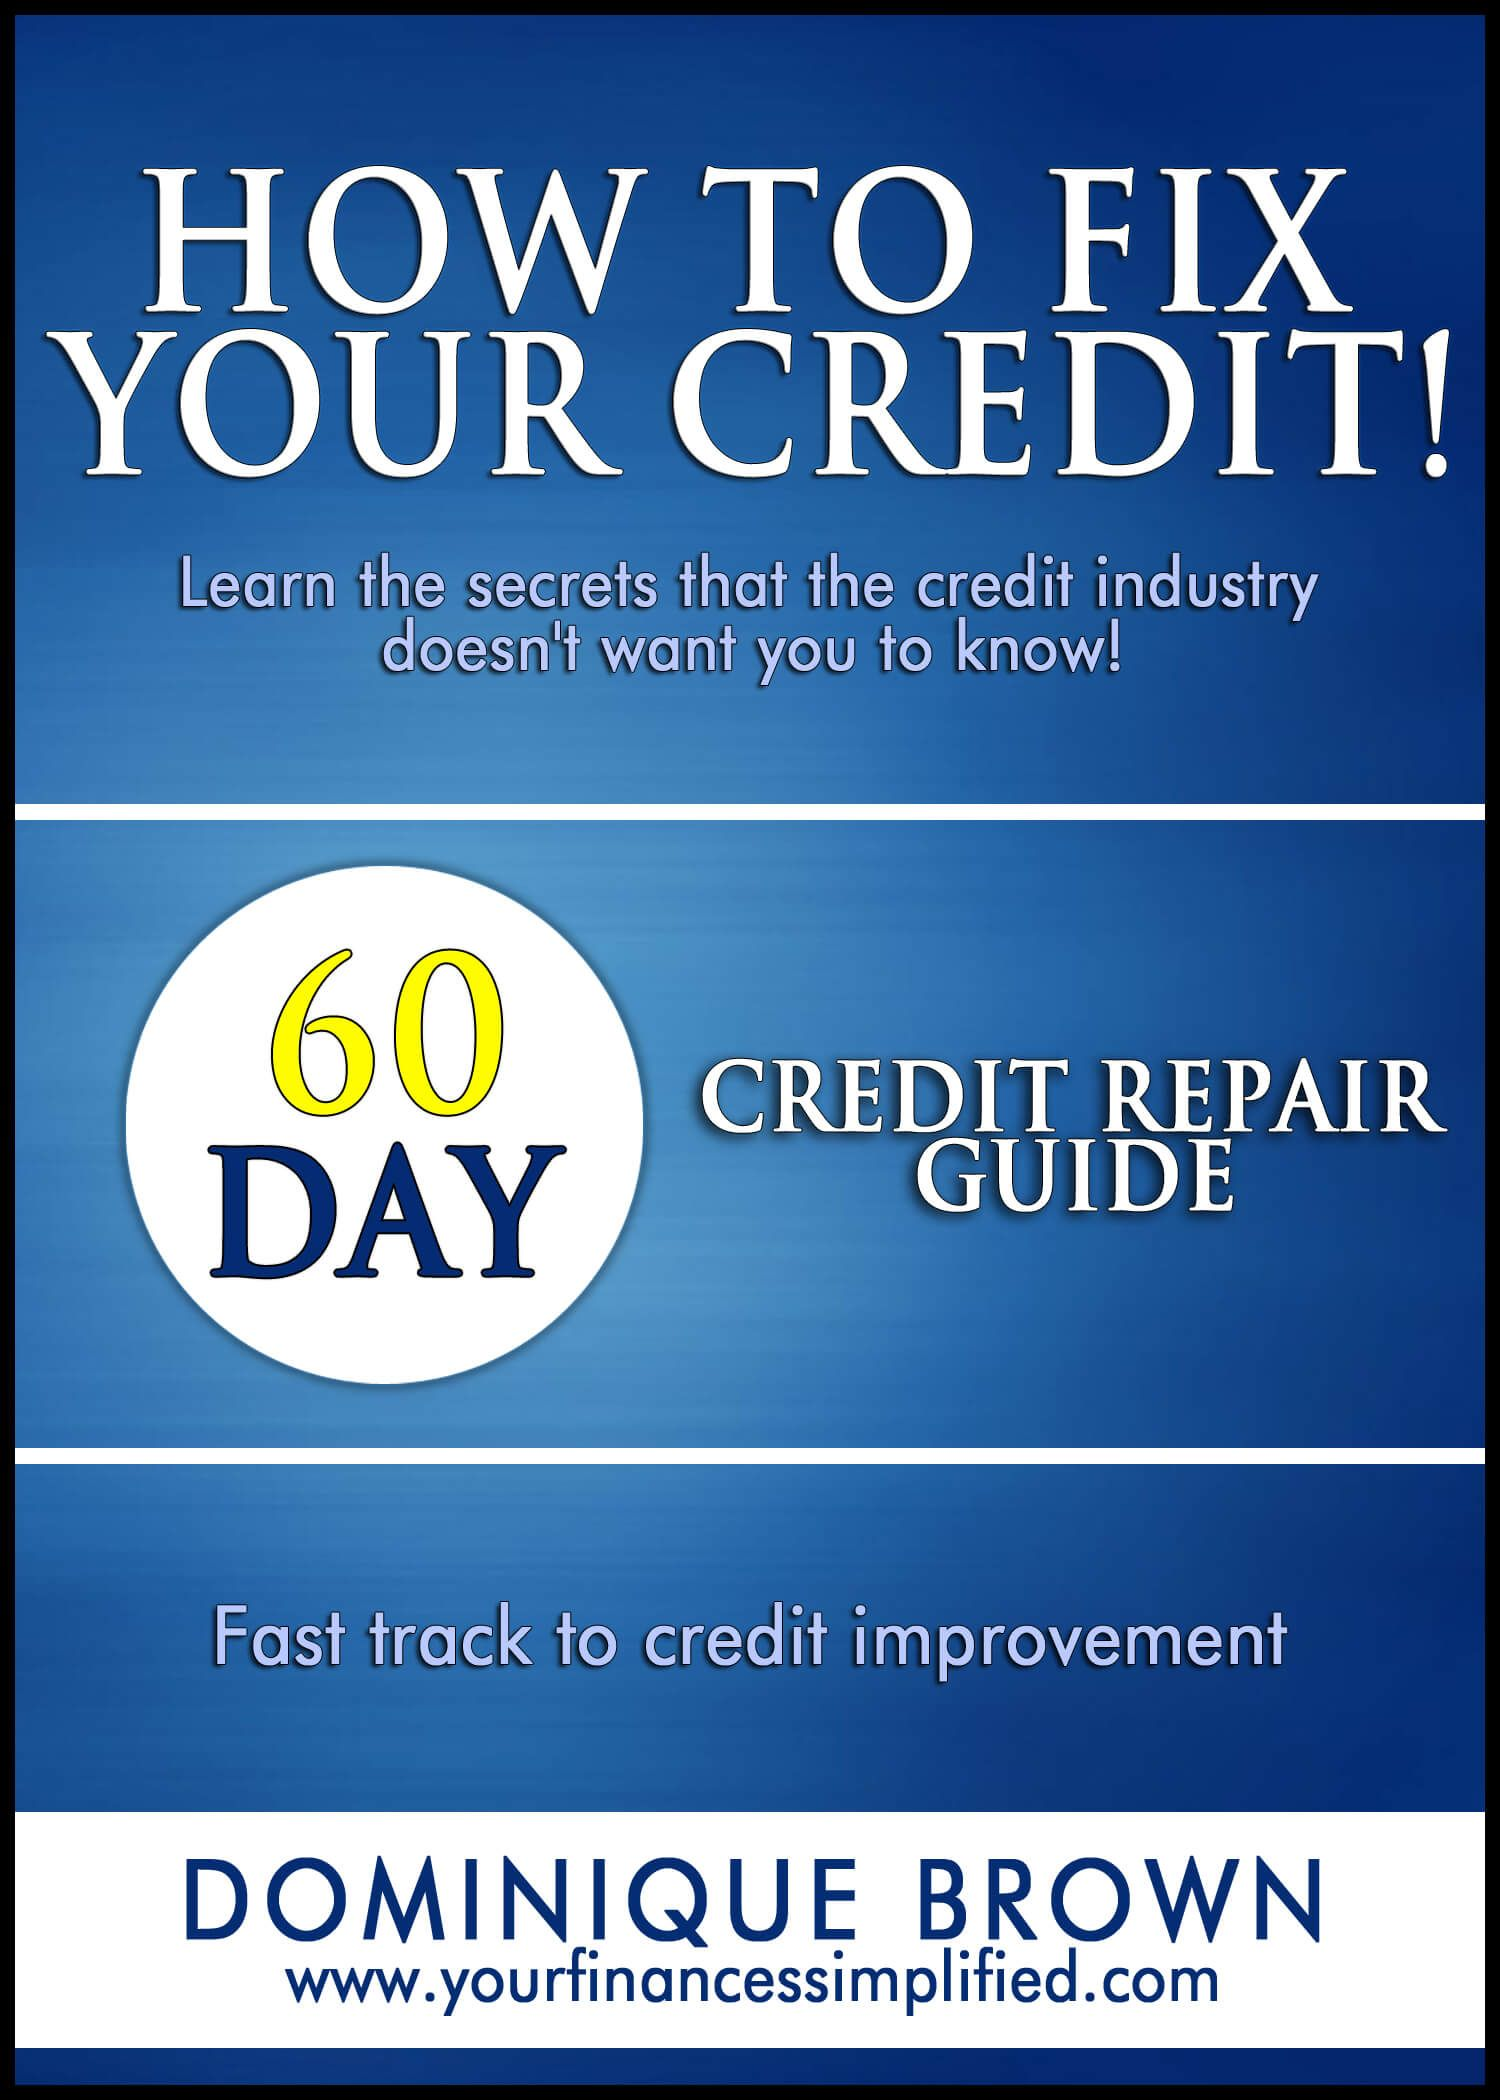 How To Fix Bad Credit Fix Credit Myself In 6 Months How To Fix Credit Credit Repair Business Fix Bad Credit